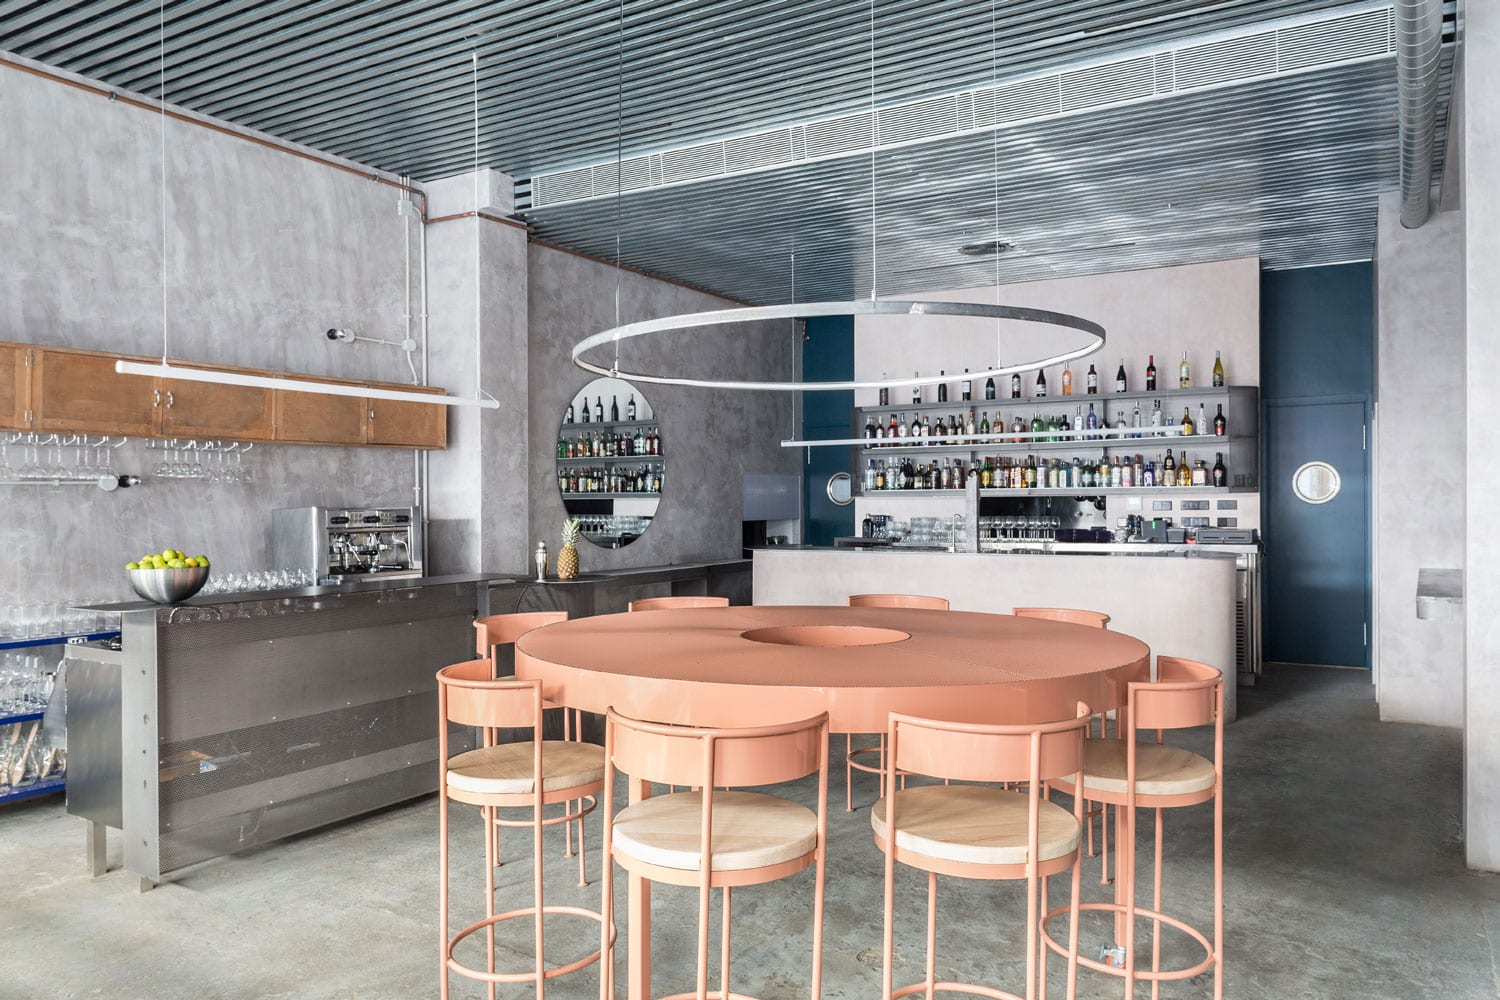 CASAPLATA Restaurant & Cocktail Bar in Seville by Lucas y Hernández-Gil   Yellowtrace